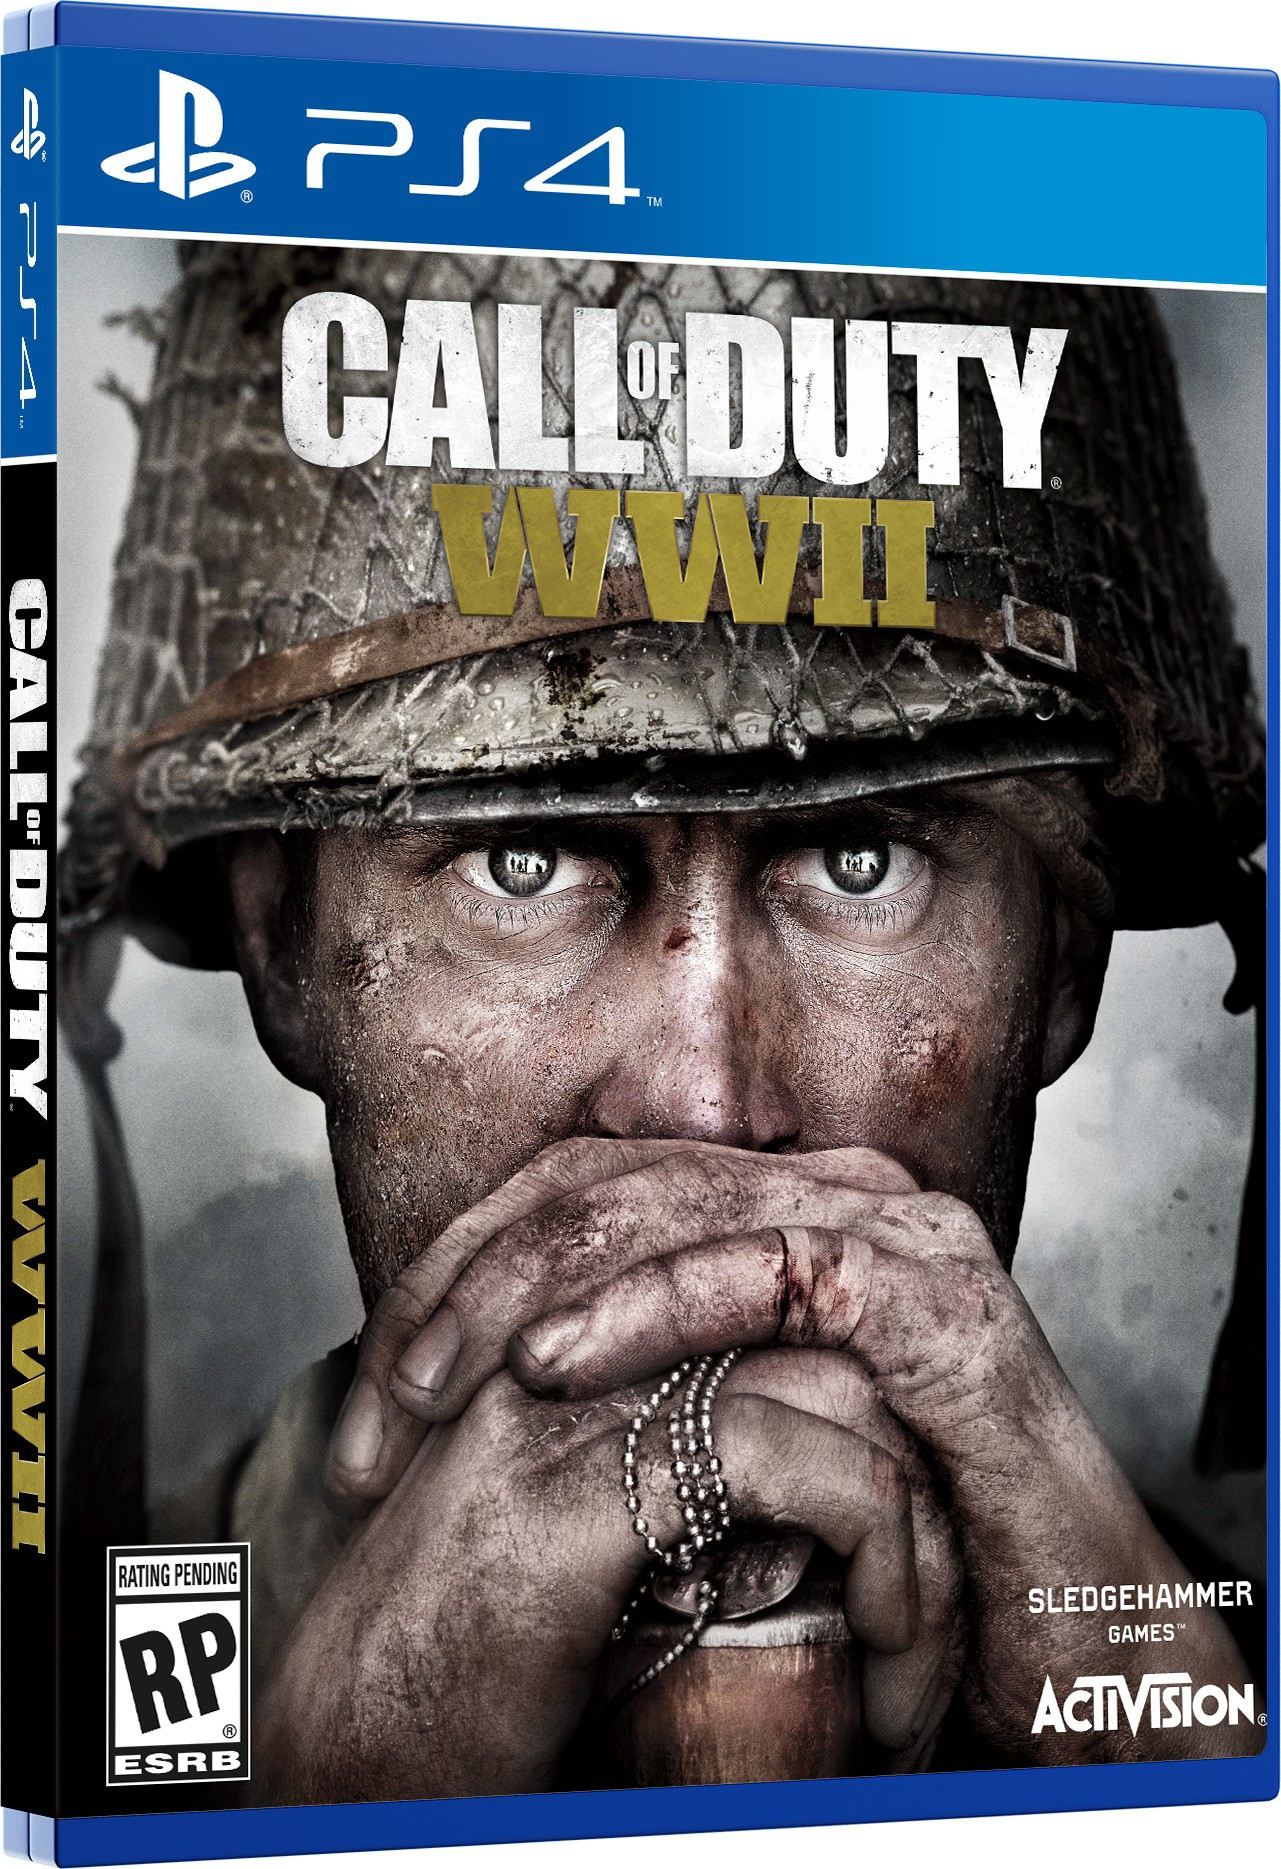 Deals - Flipkart - Call Of Duty PC,PS4 and Xbox One